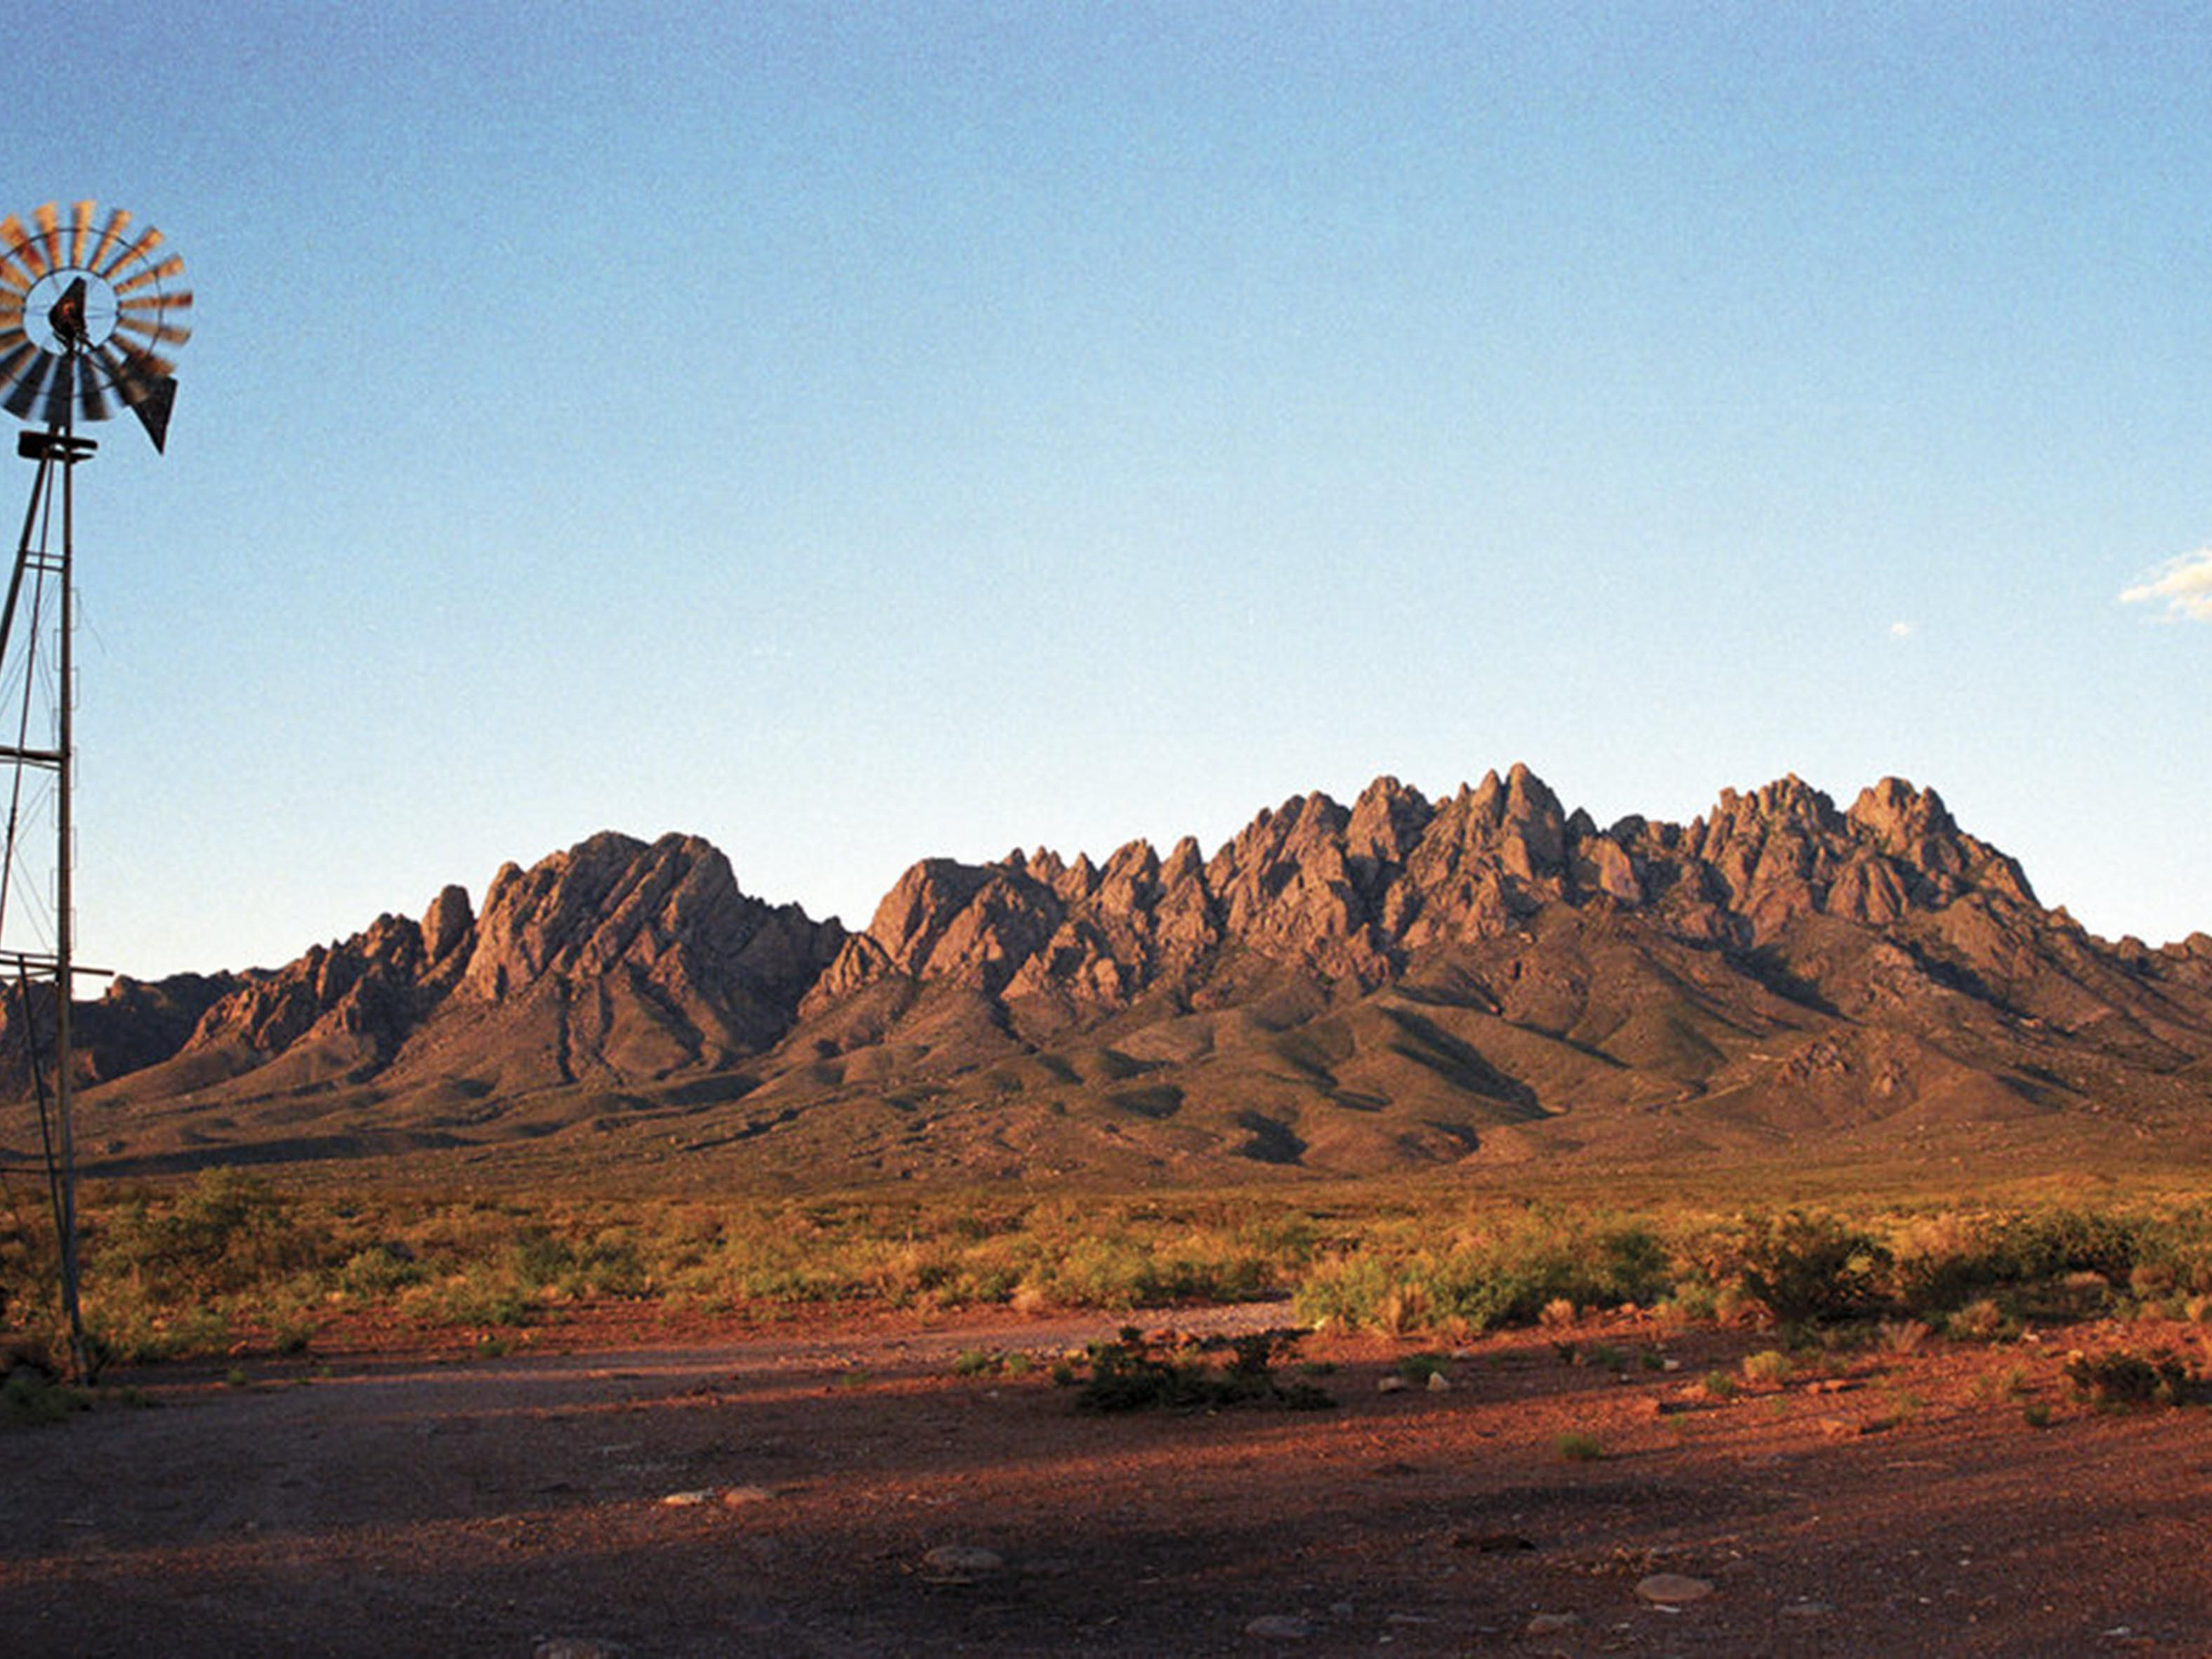 Be sure to visit the Organ Mountains!